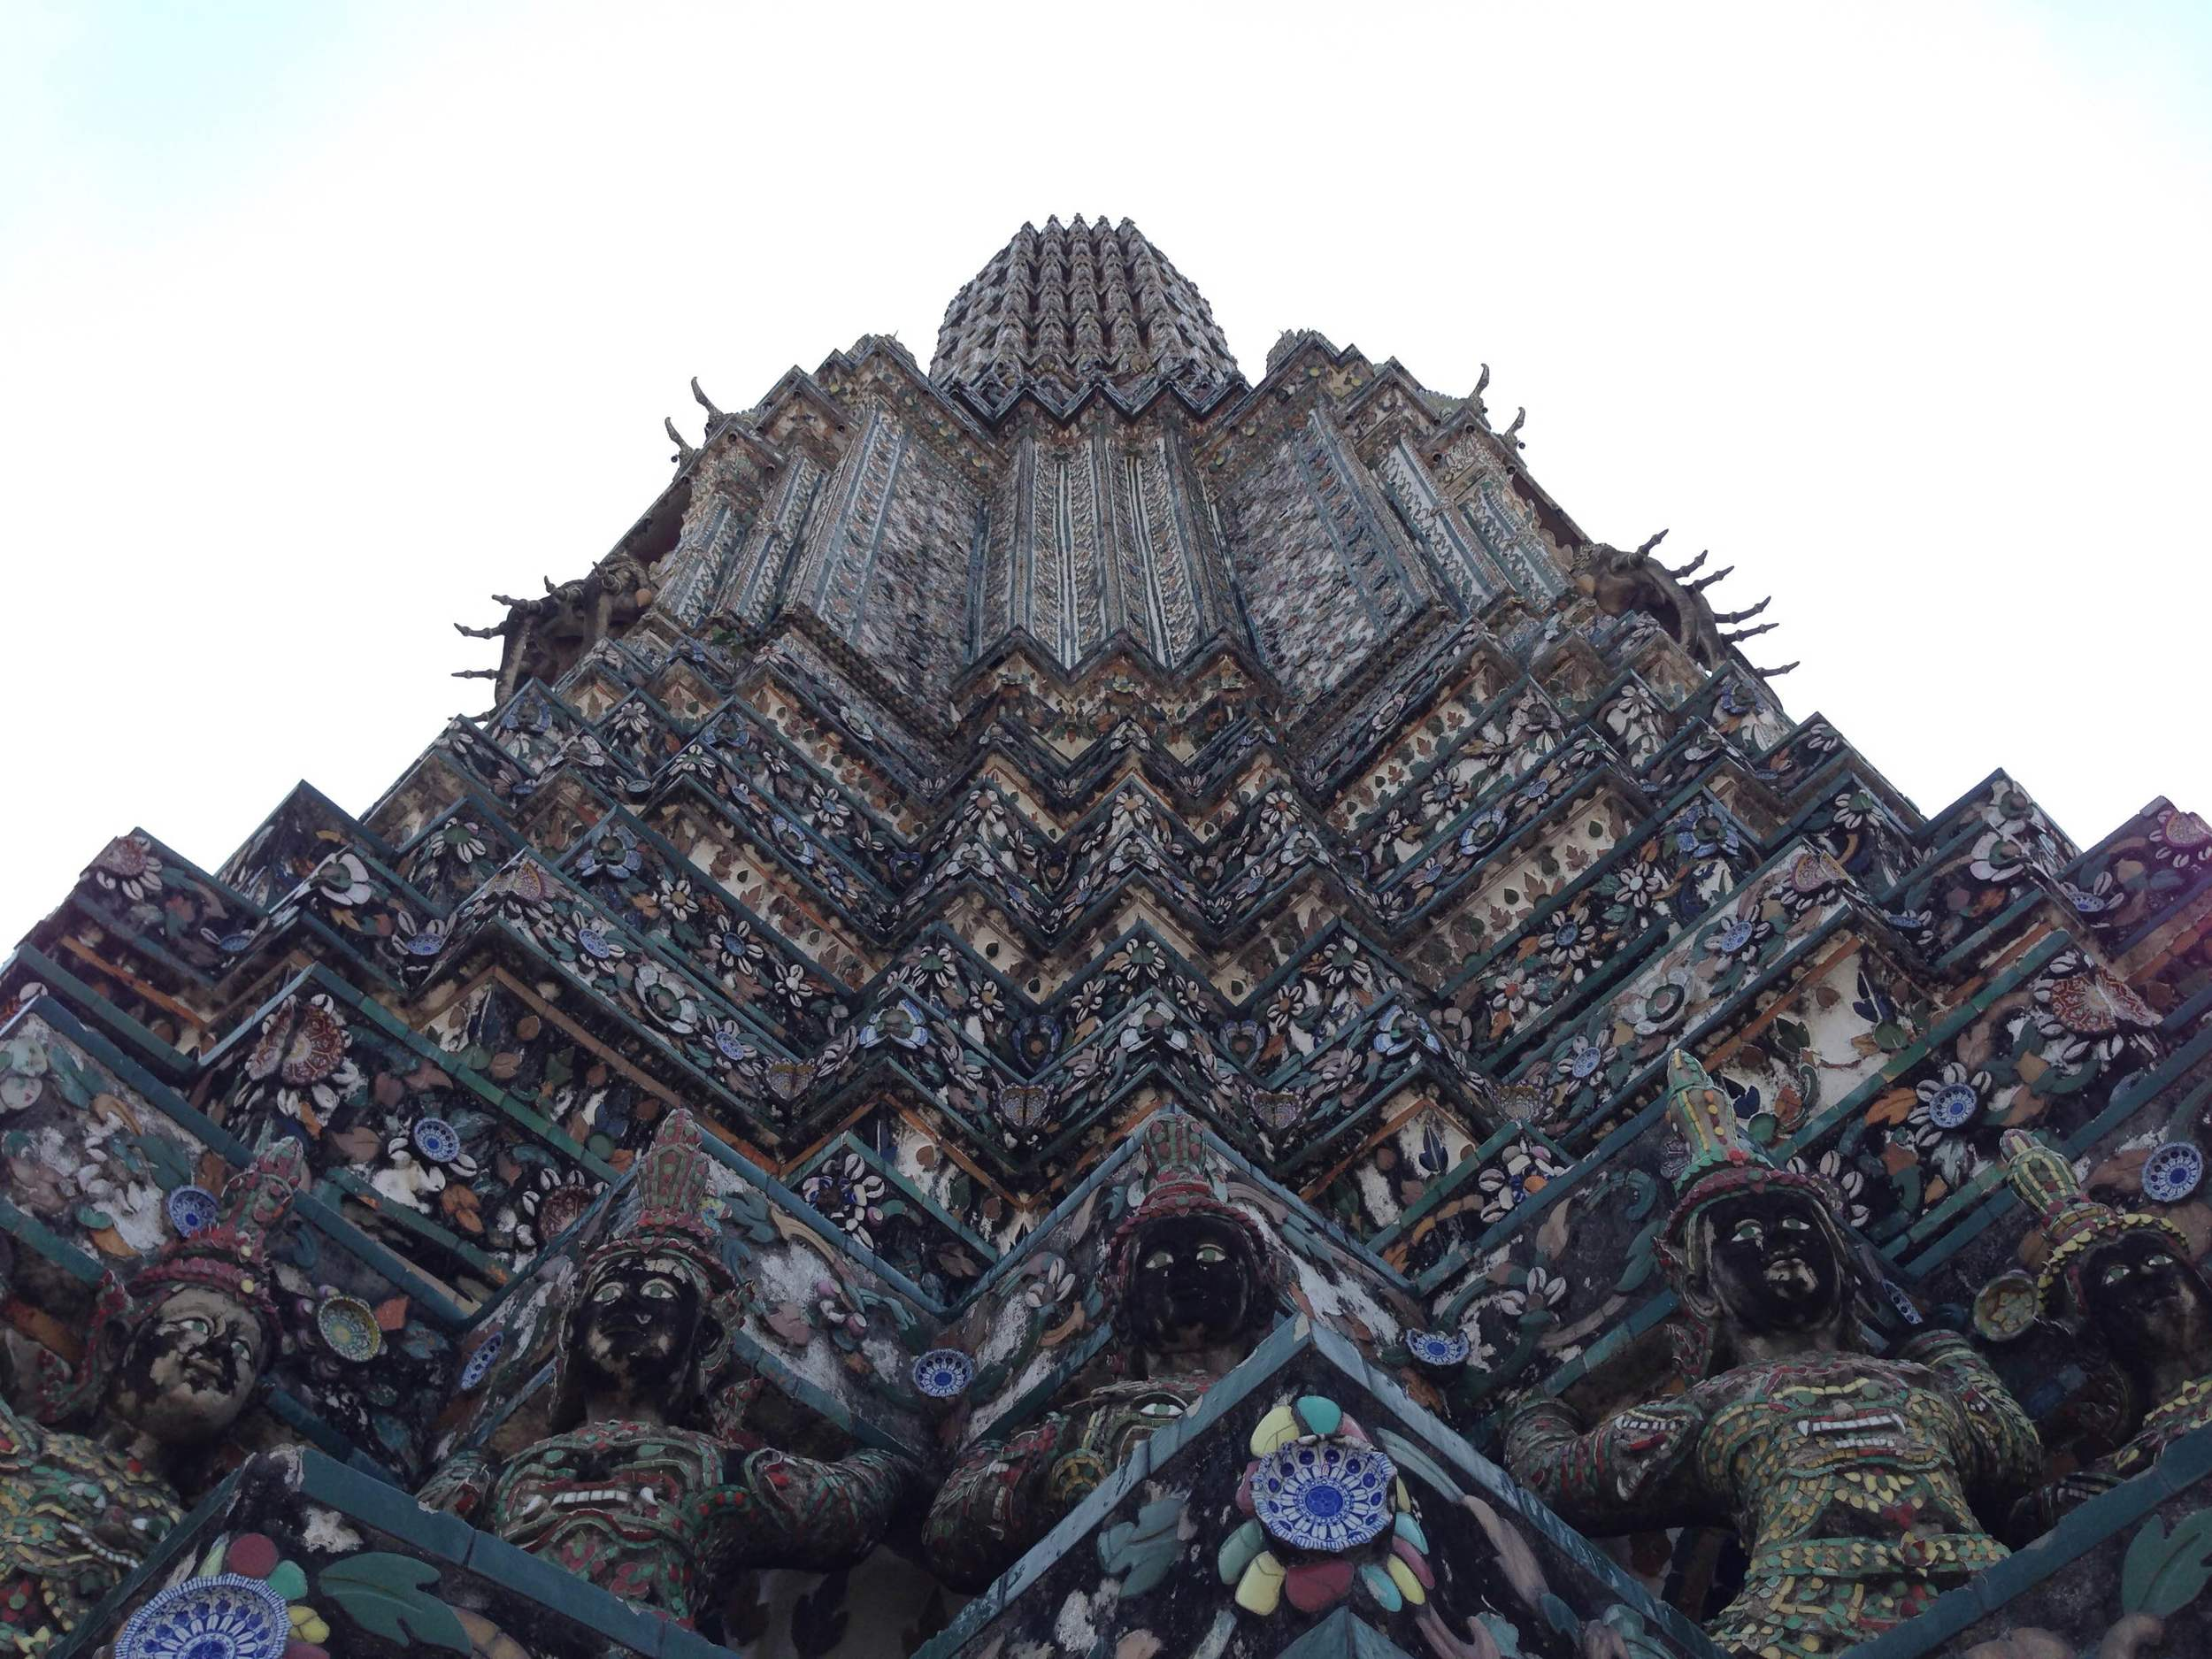 The beauty that is the understated Wat Arun, just across the Chao Phraya River.